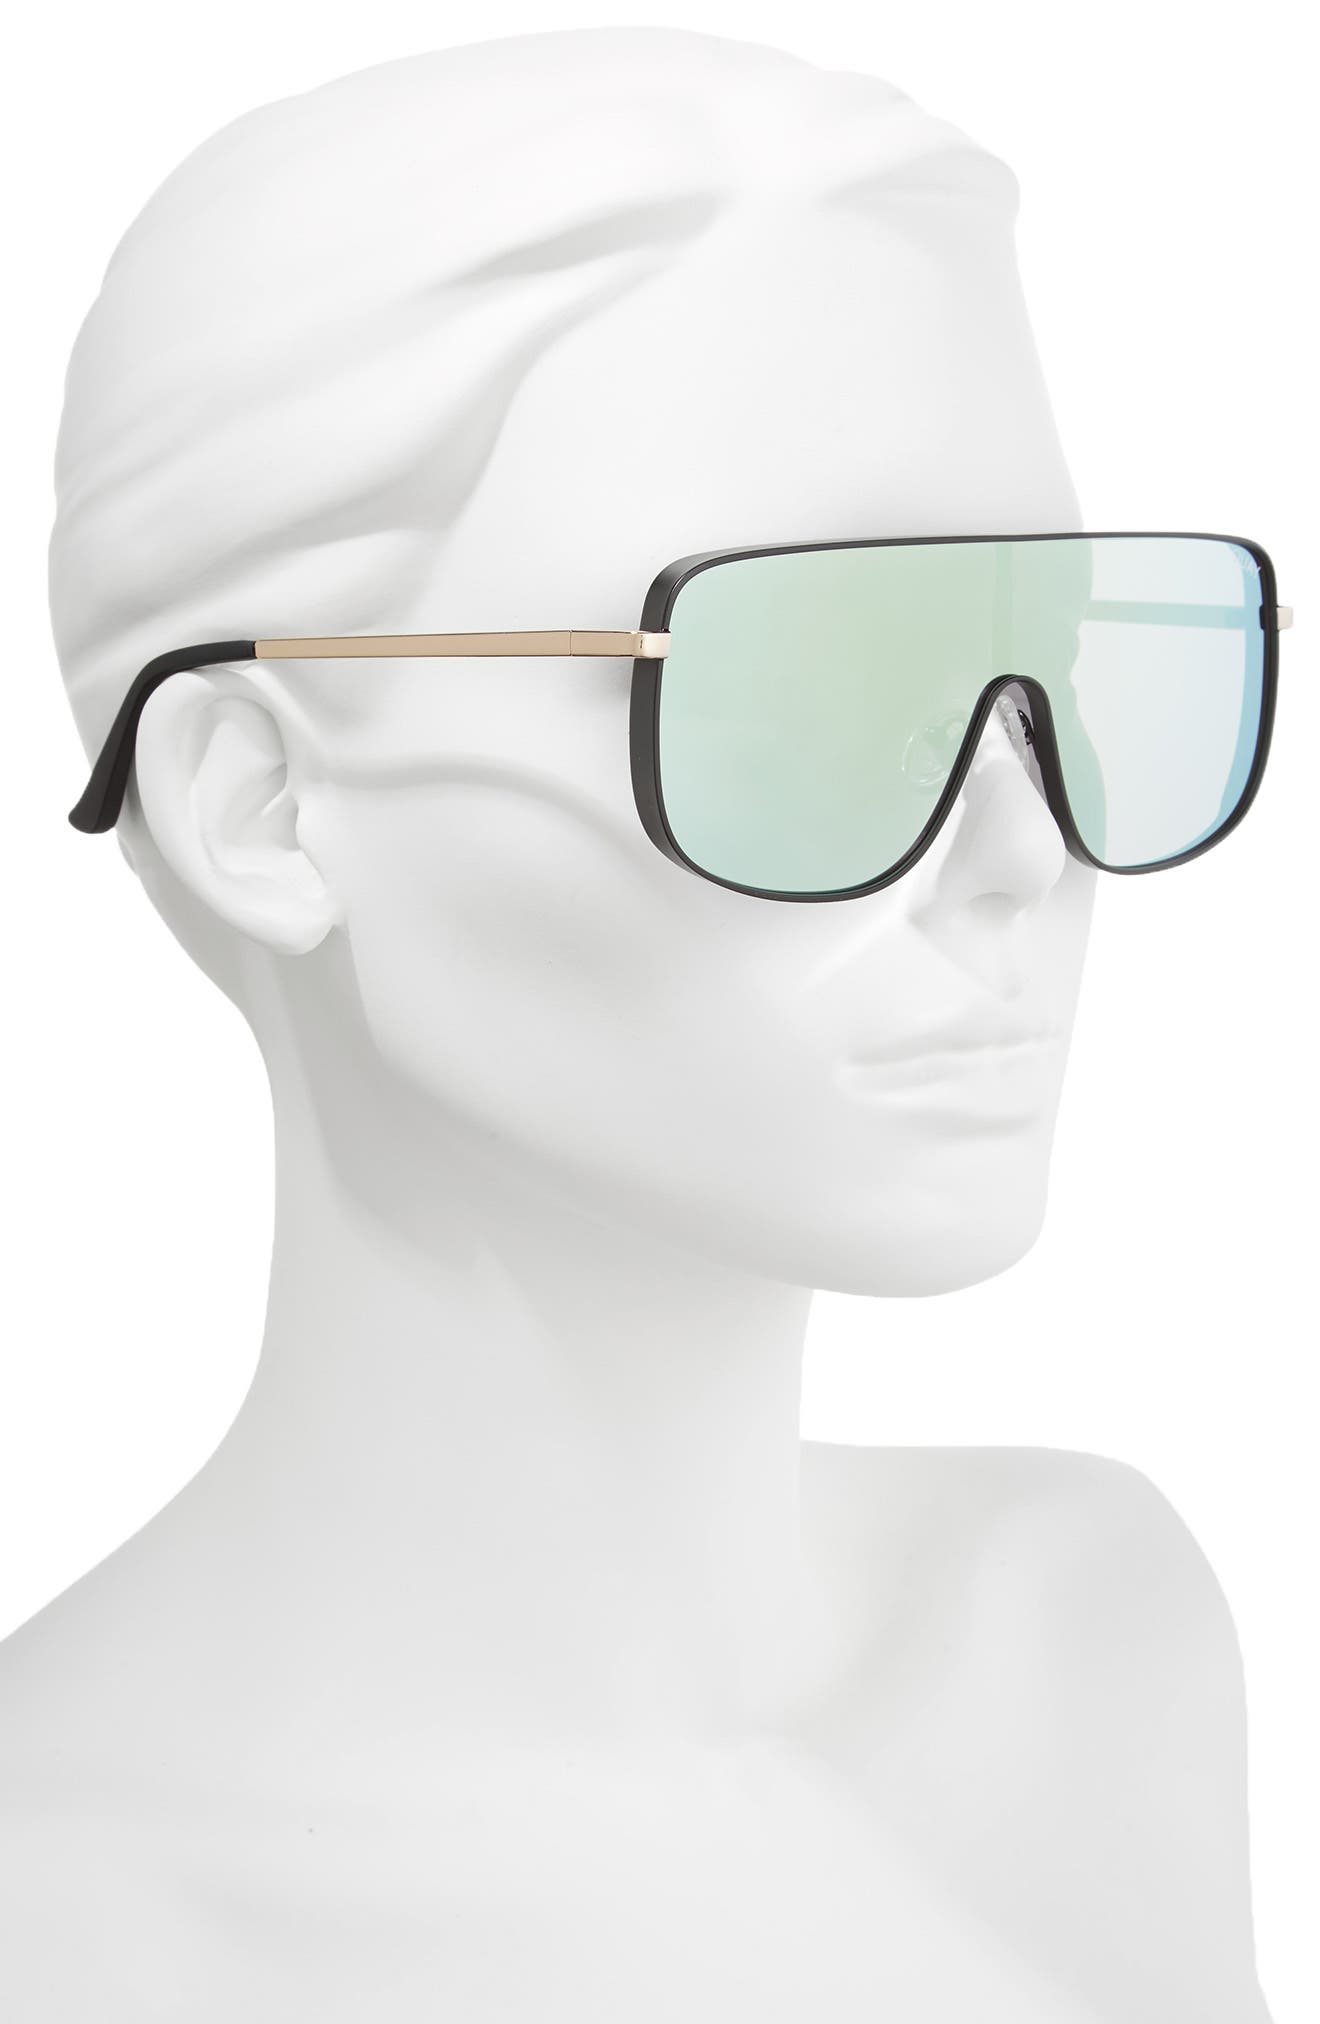 Unbothered 68mm Shield Sunglasses,                             Alternate thumbnail 3, color,